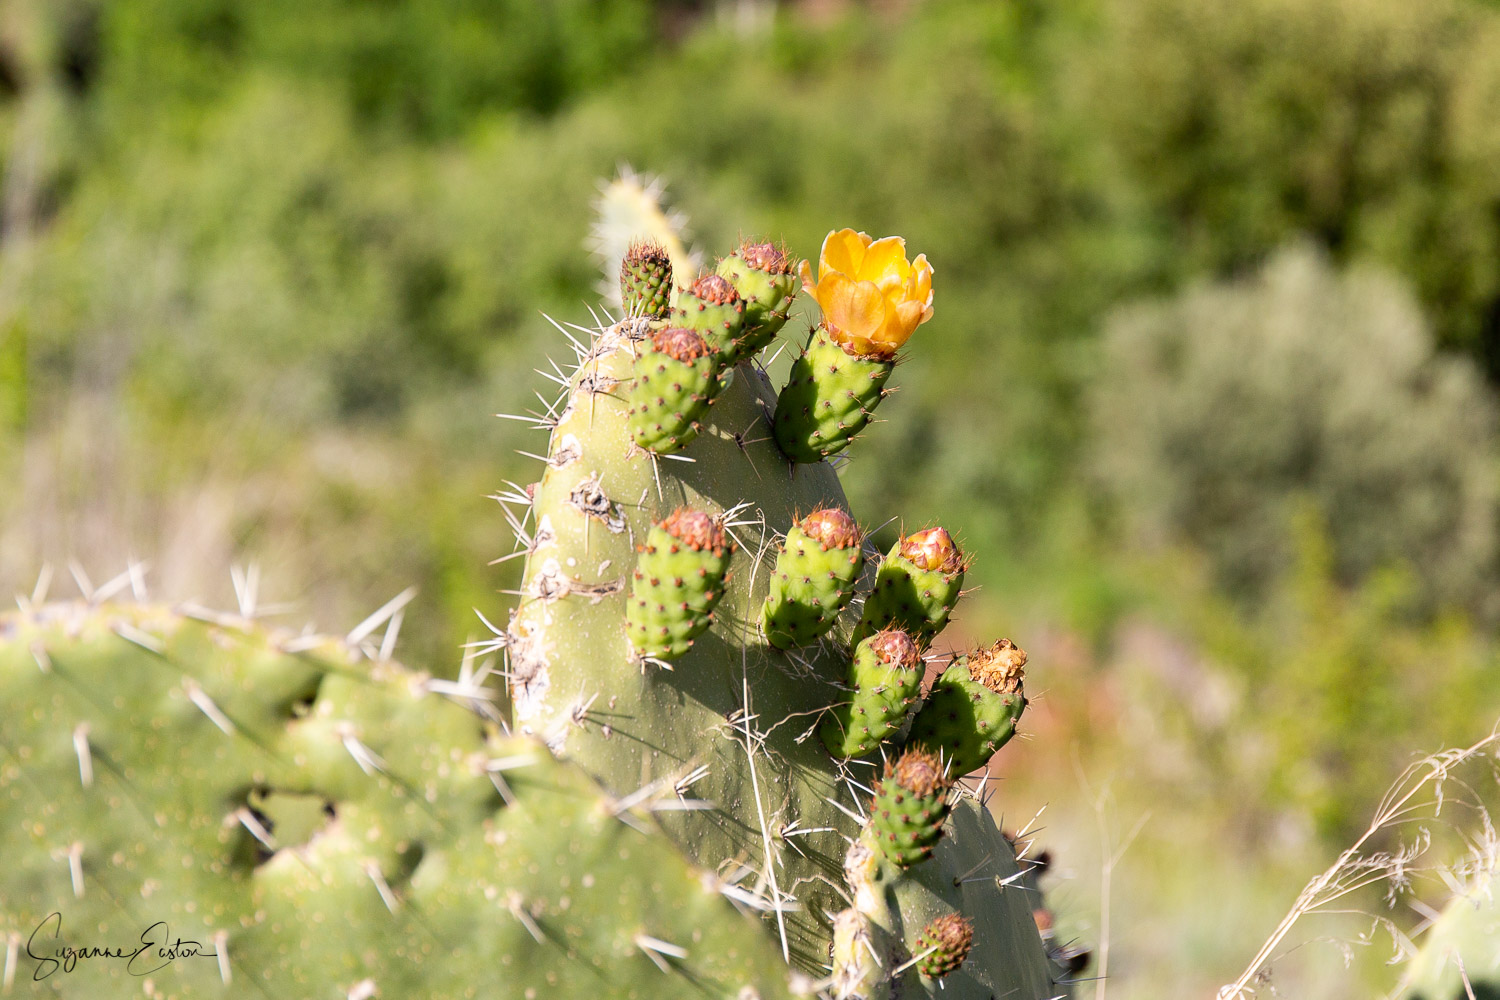 A prickly pear flower in Marrakech